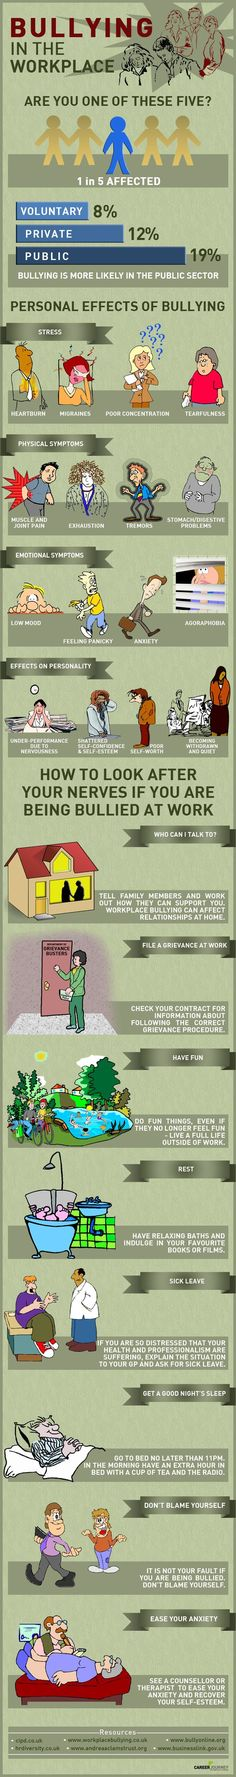 A GeekyMomma's Blog: Bullying: Not Just For Children Anymore http://itz-my.com